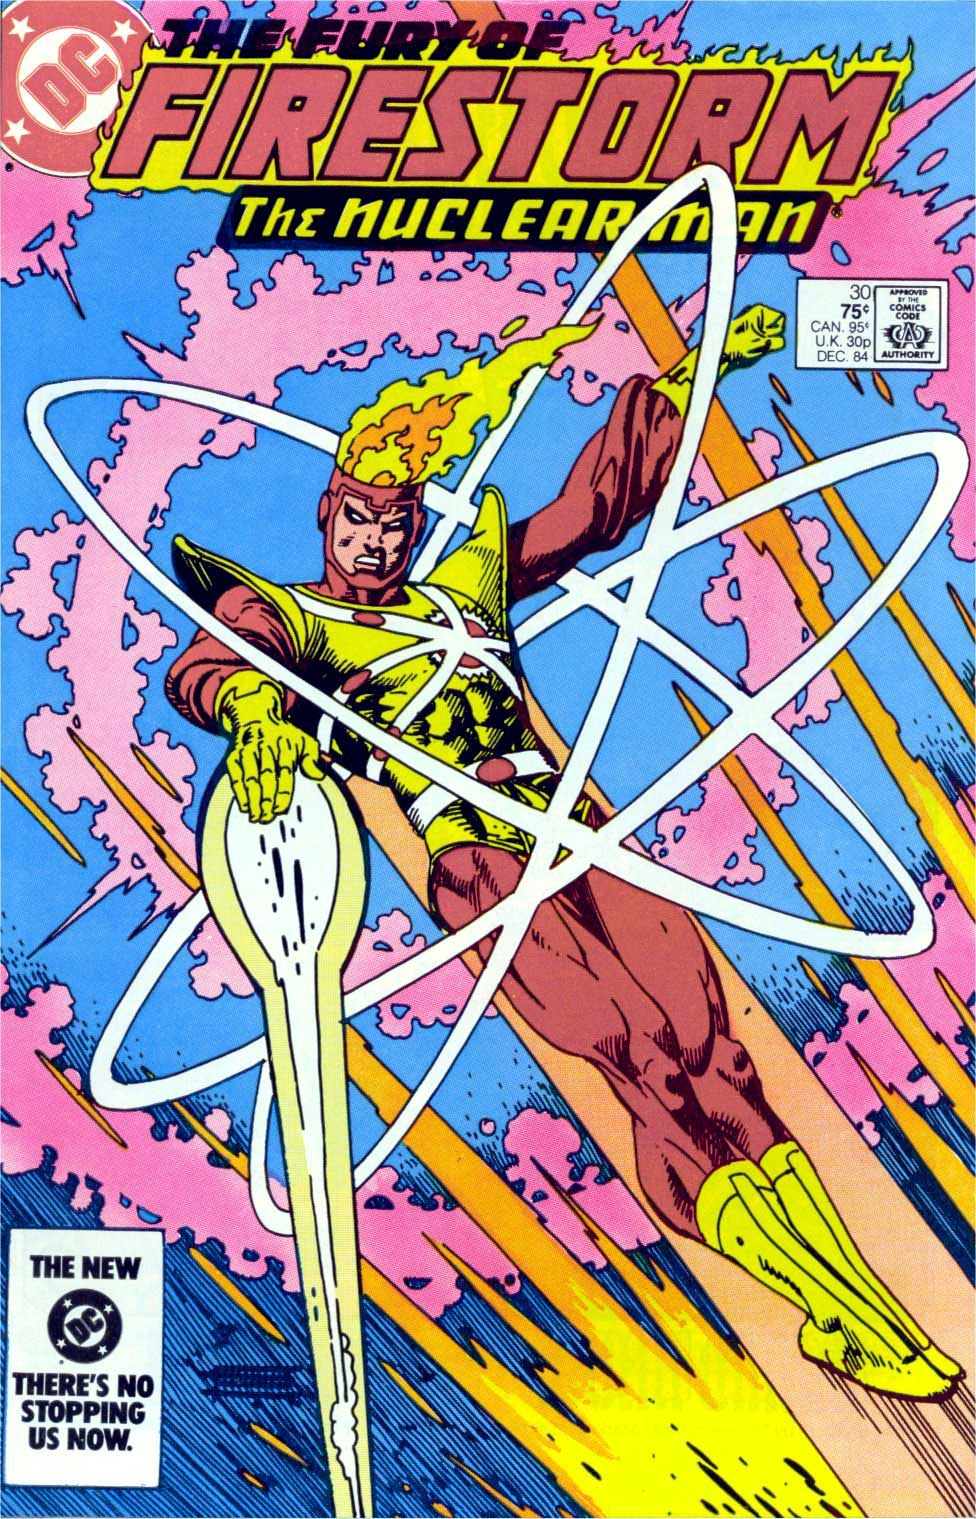 Fury of Firestorm #30 cover by GIl Kane